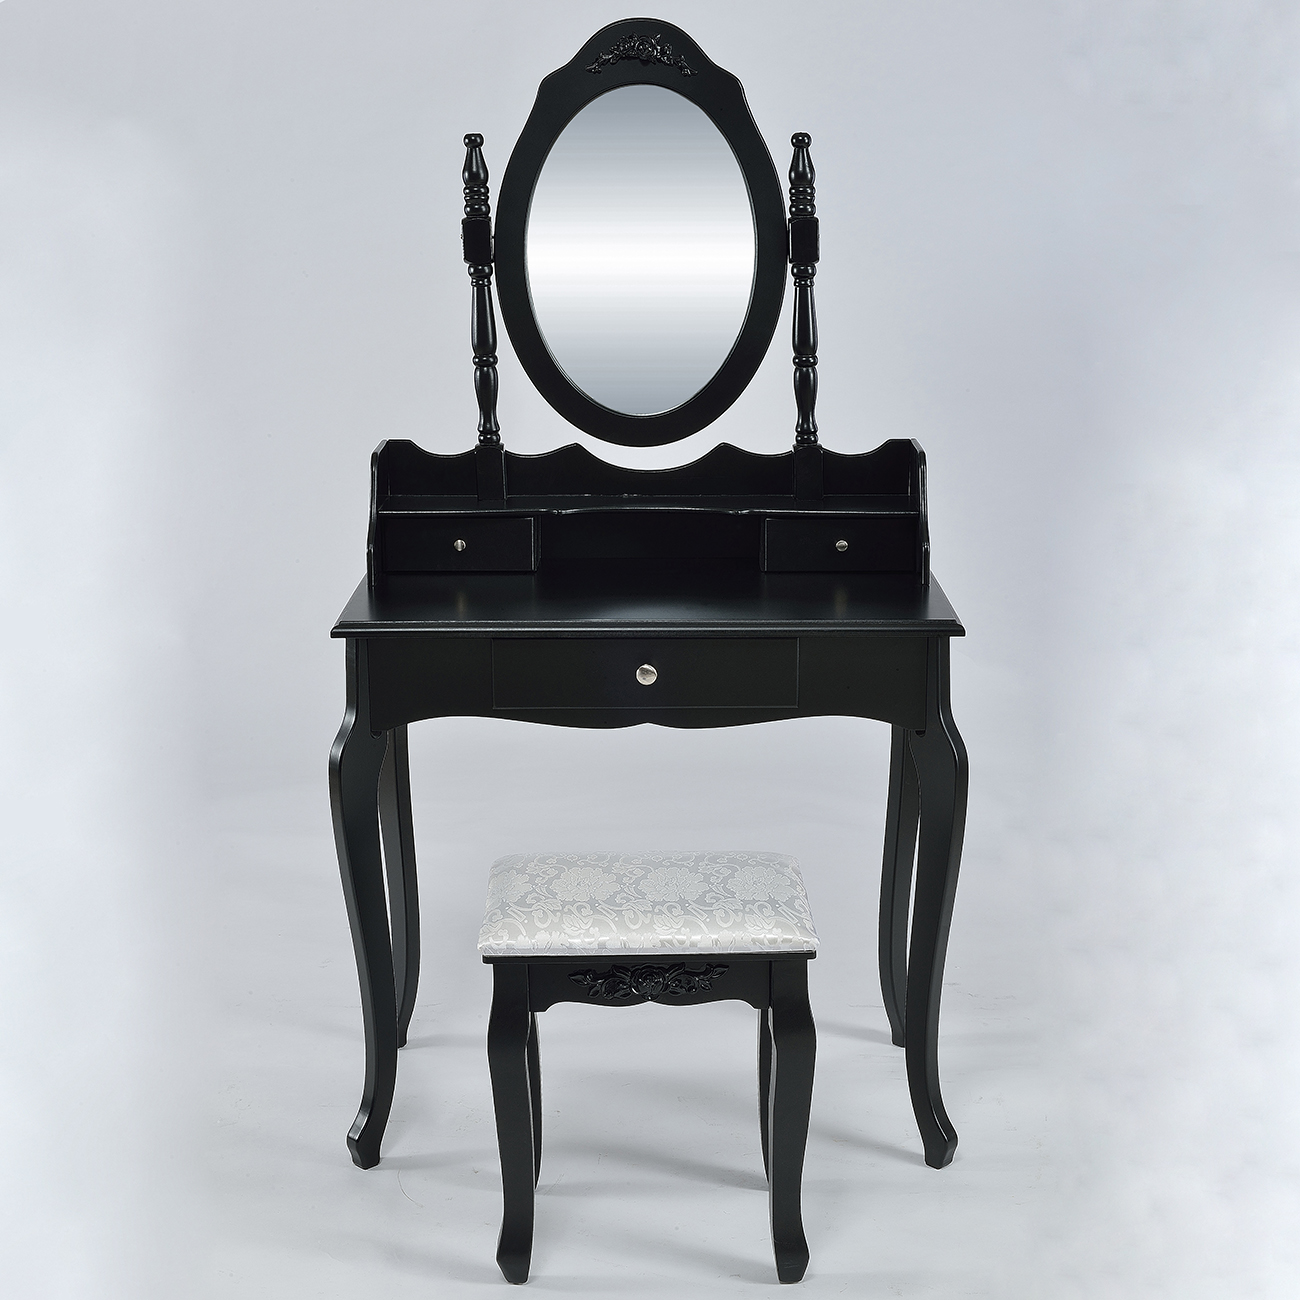 New 3 drawer mirror makeup vanity table set with stool for Black makeup table with mirror